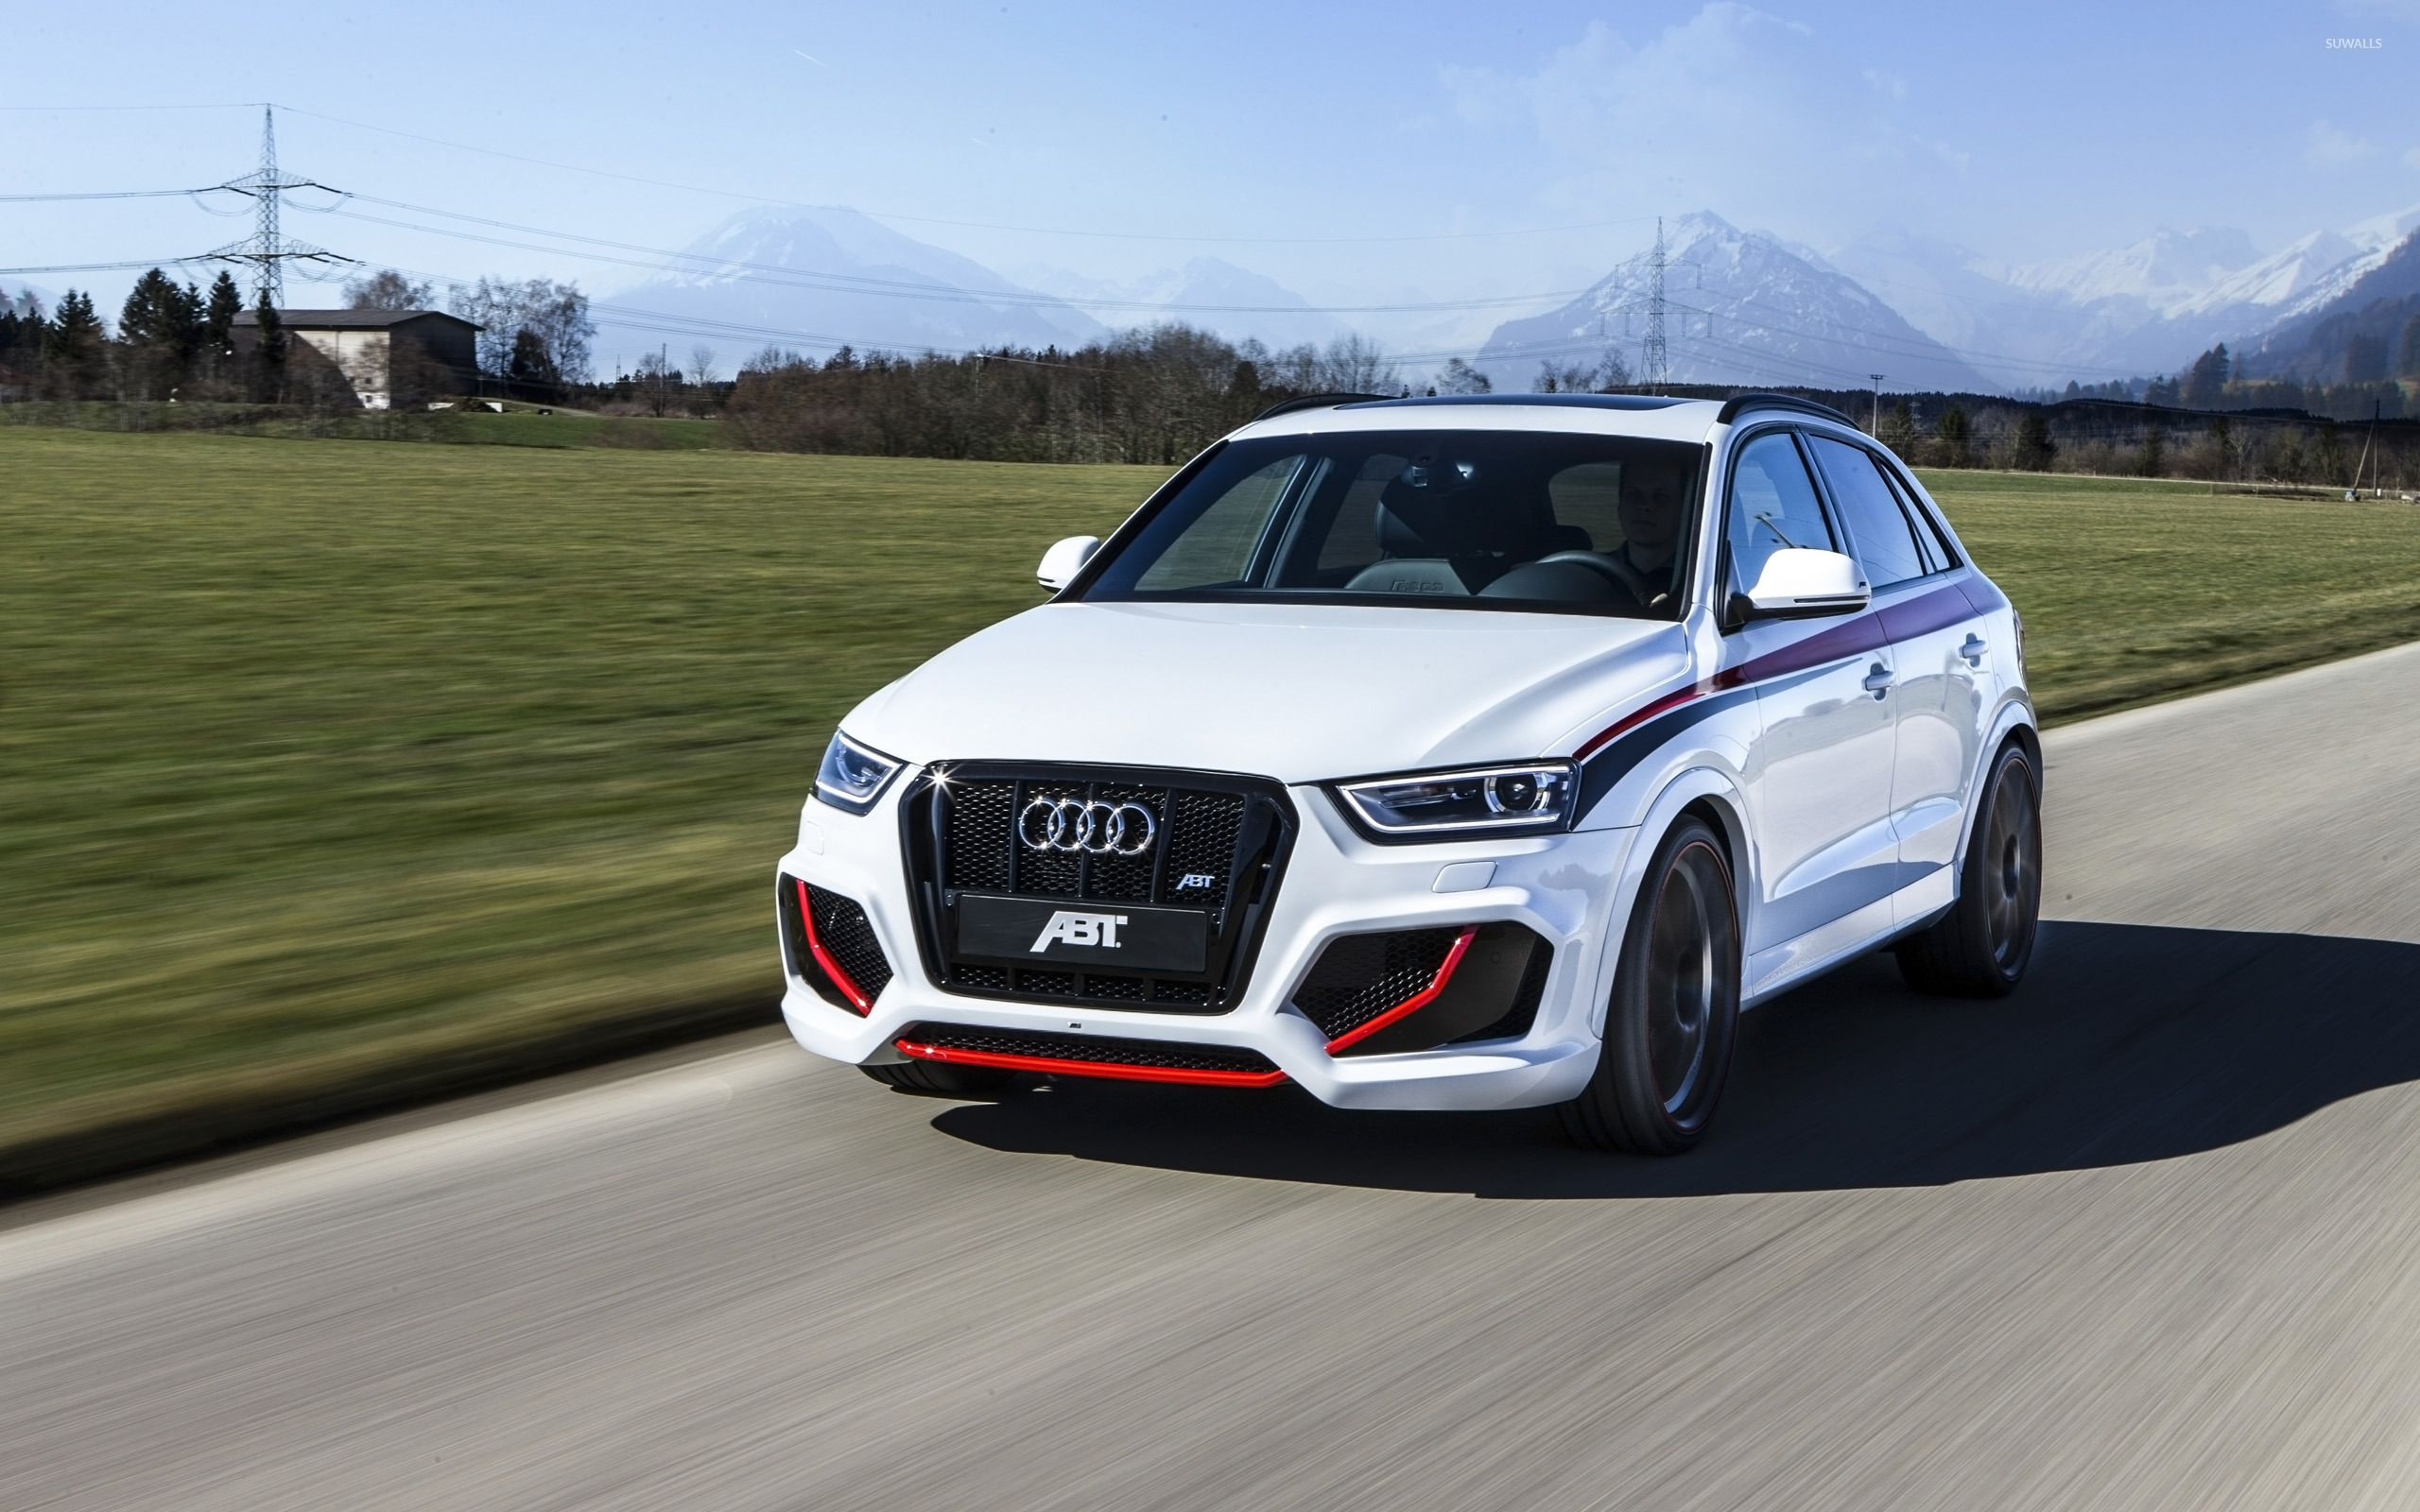 2014 ABT Audi RS Q3 wallpapers